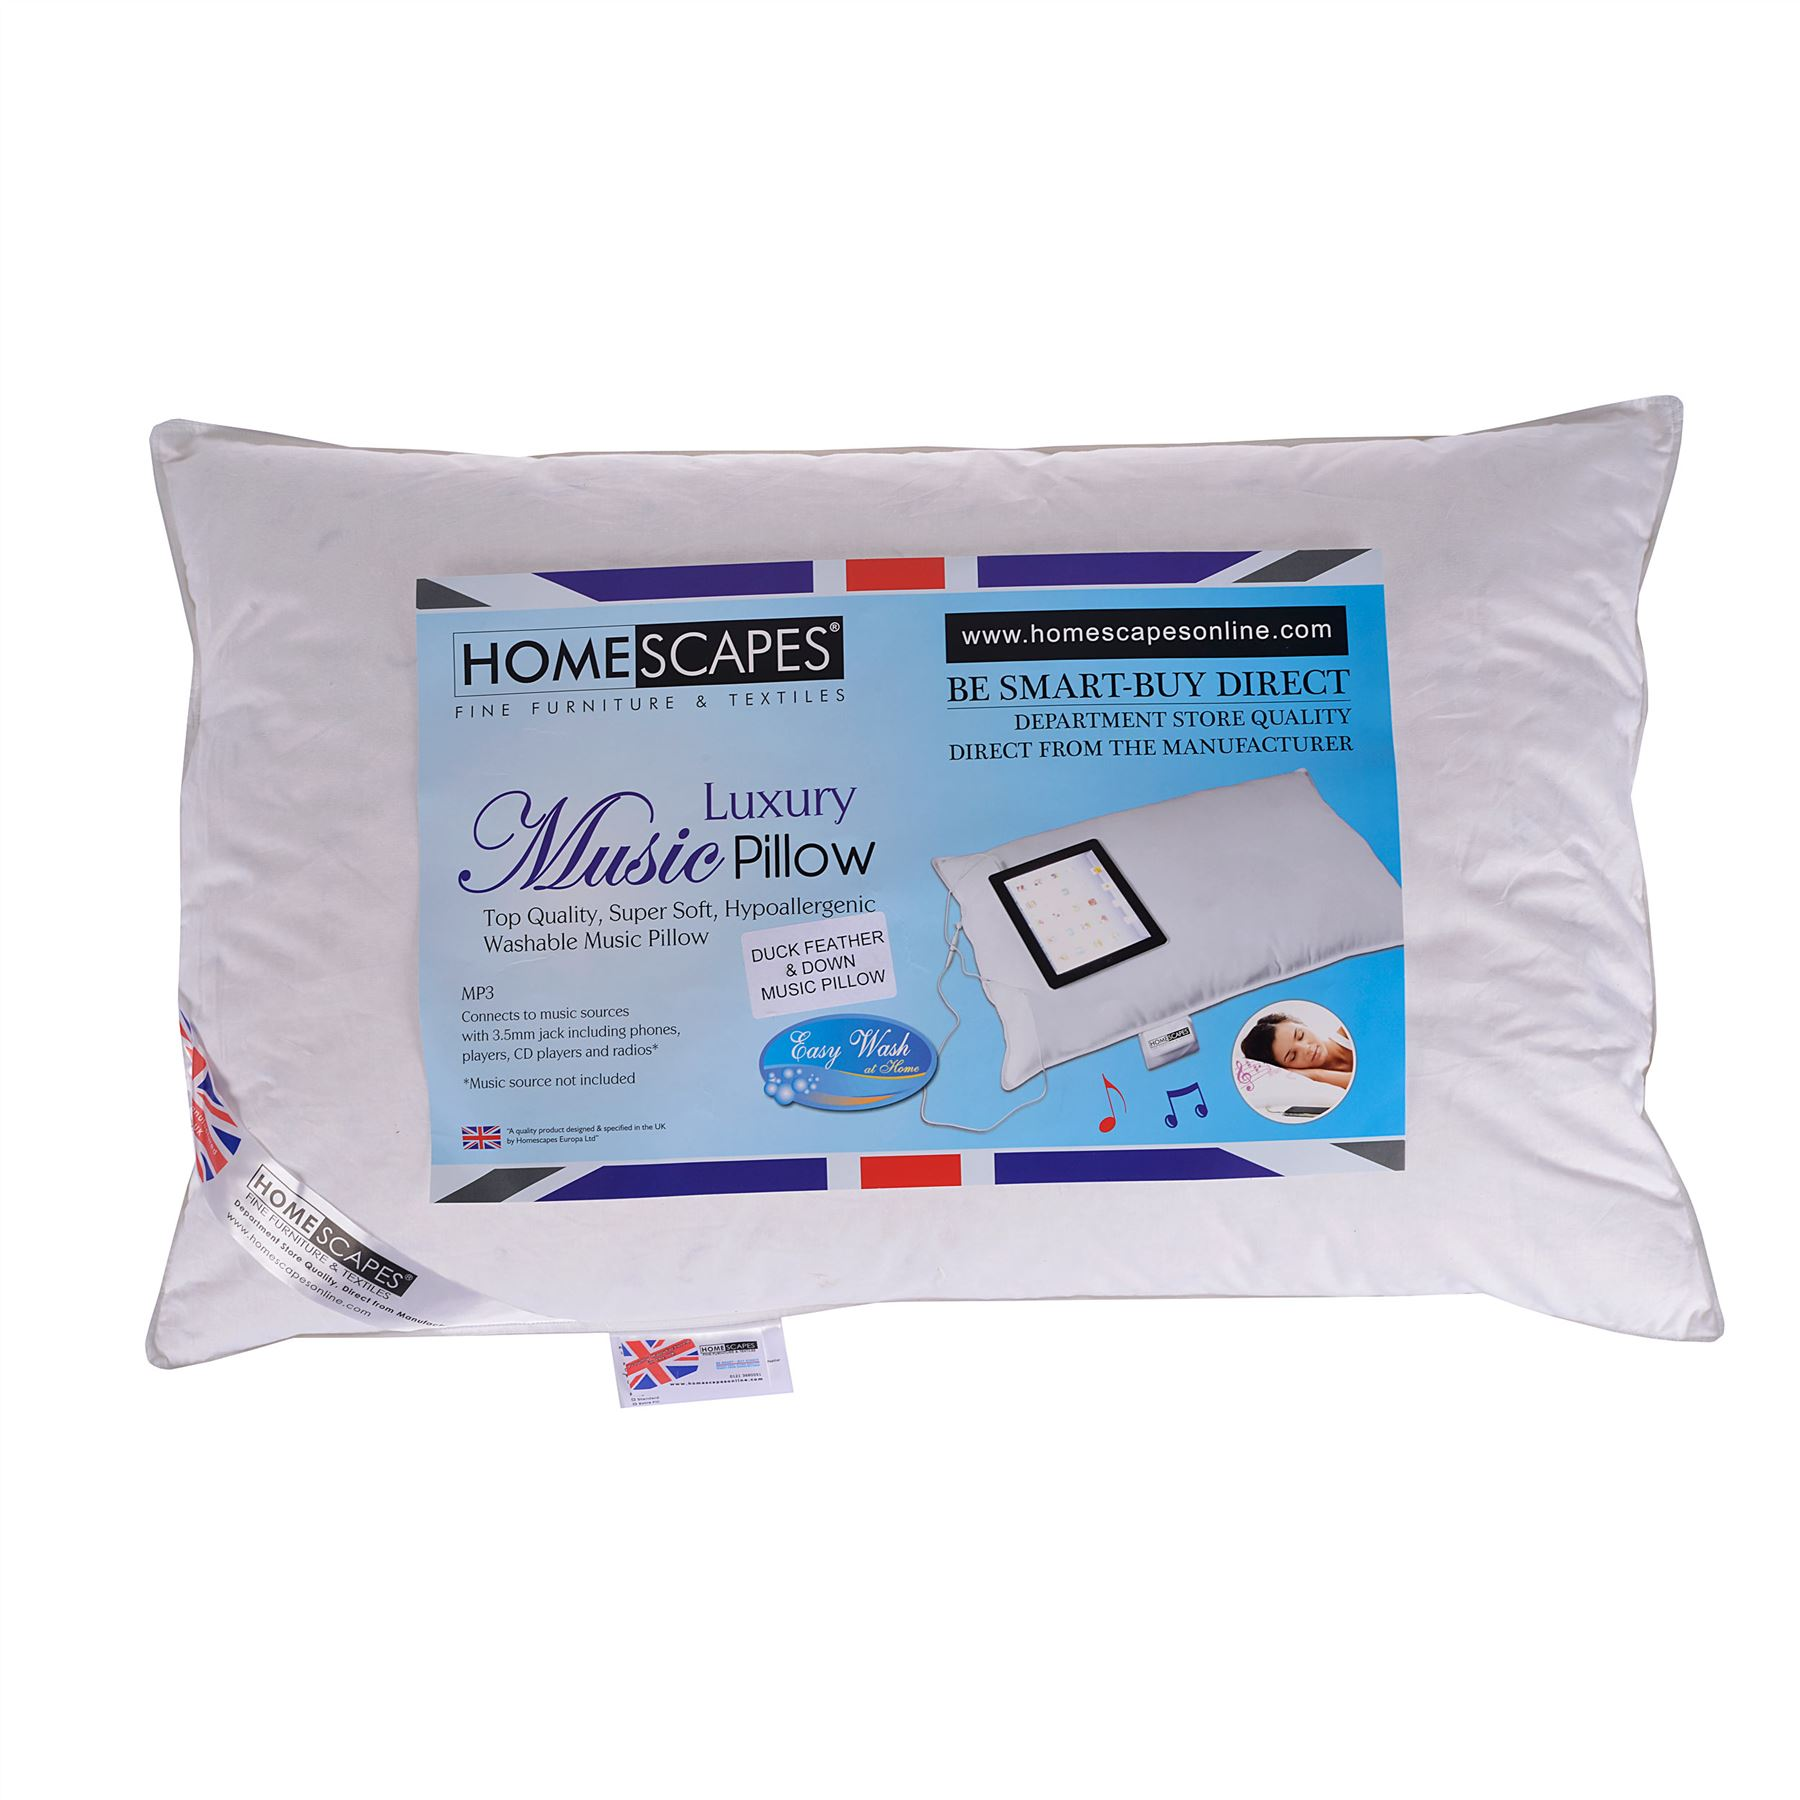 Get Sound Asleep With Homescapes Washable Music Pillows